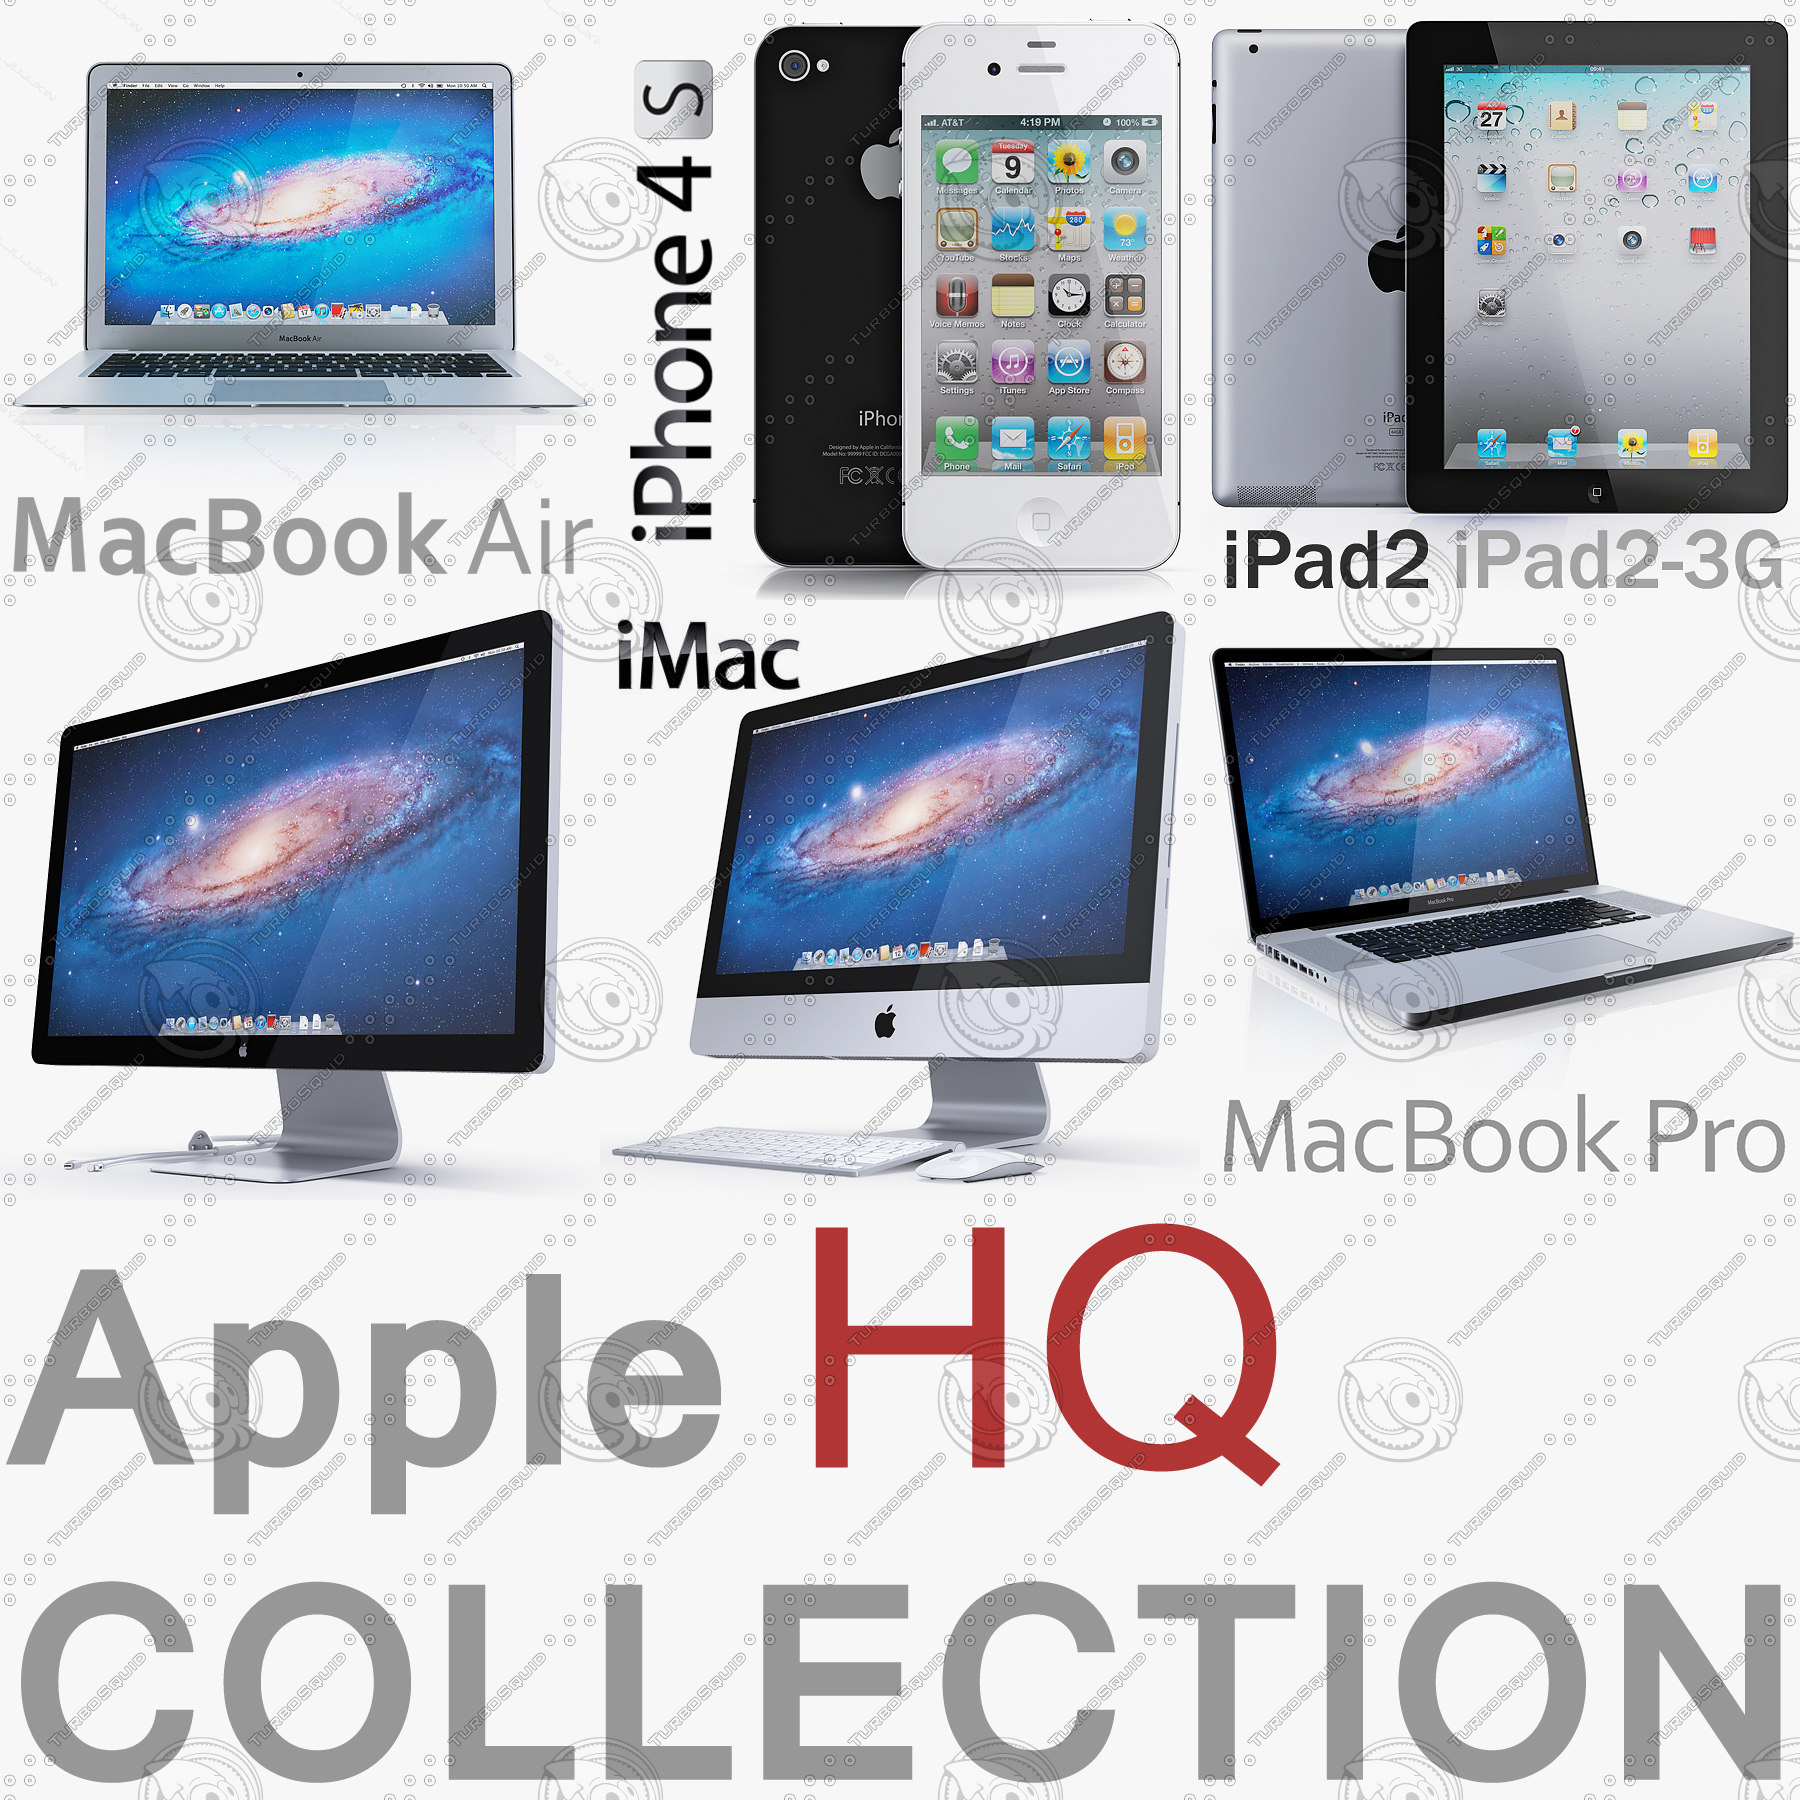 Apple_collection_01.jpg